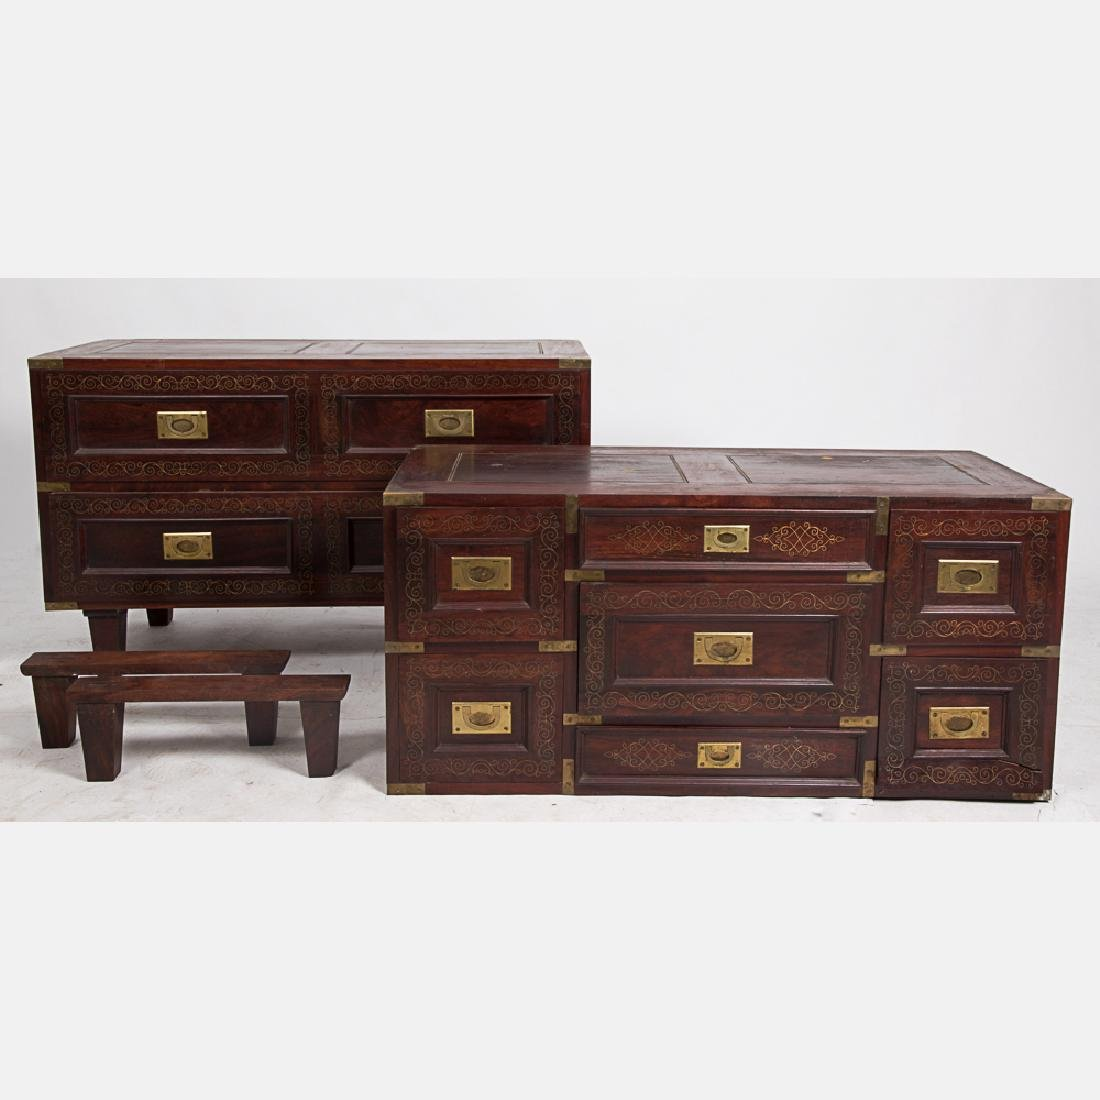 A Campaign Style Mahogany and Brass Stackable Double